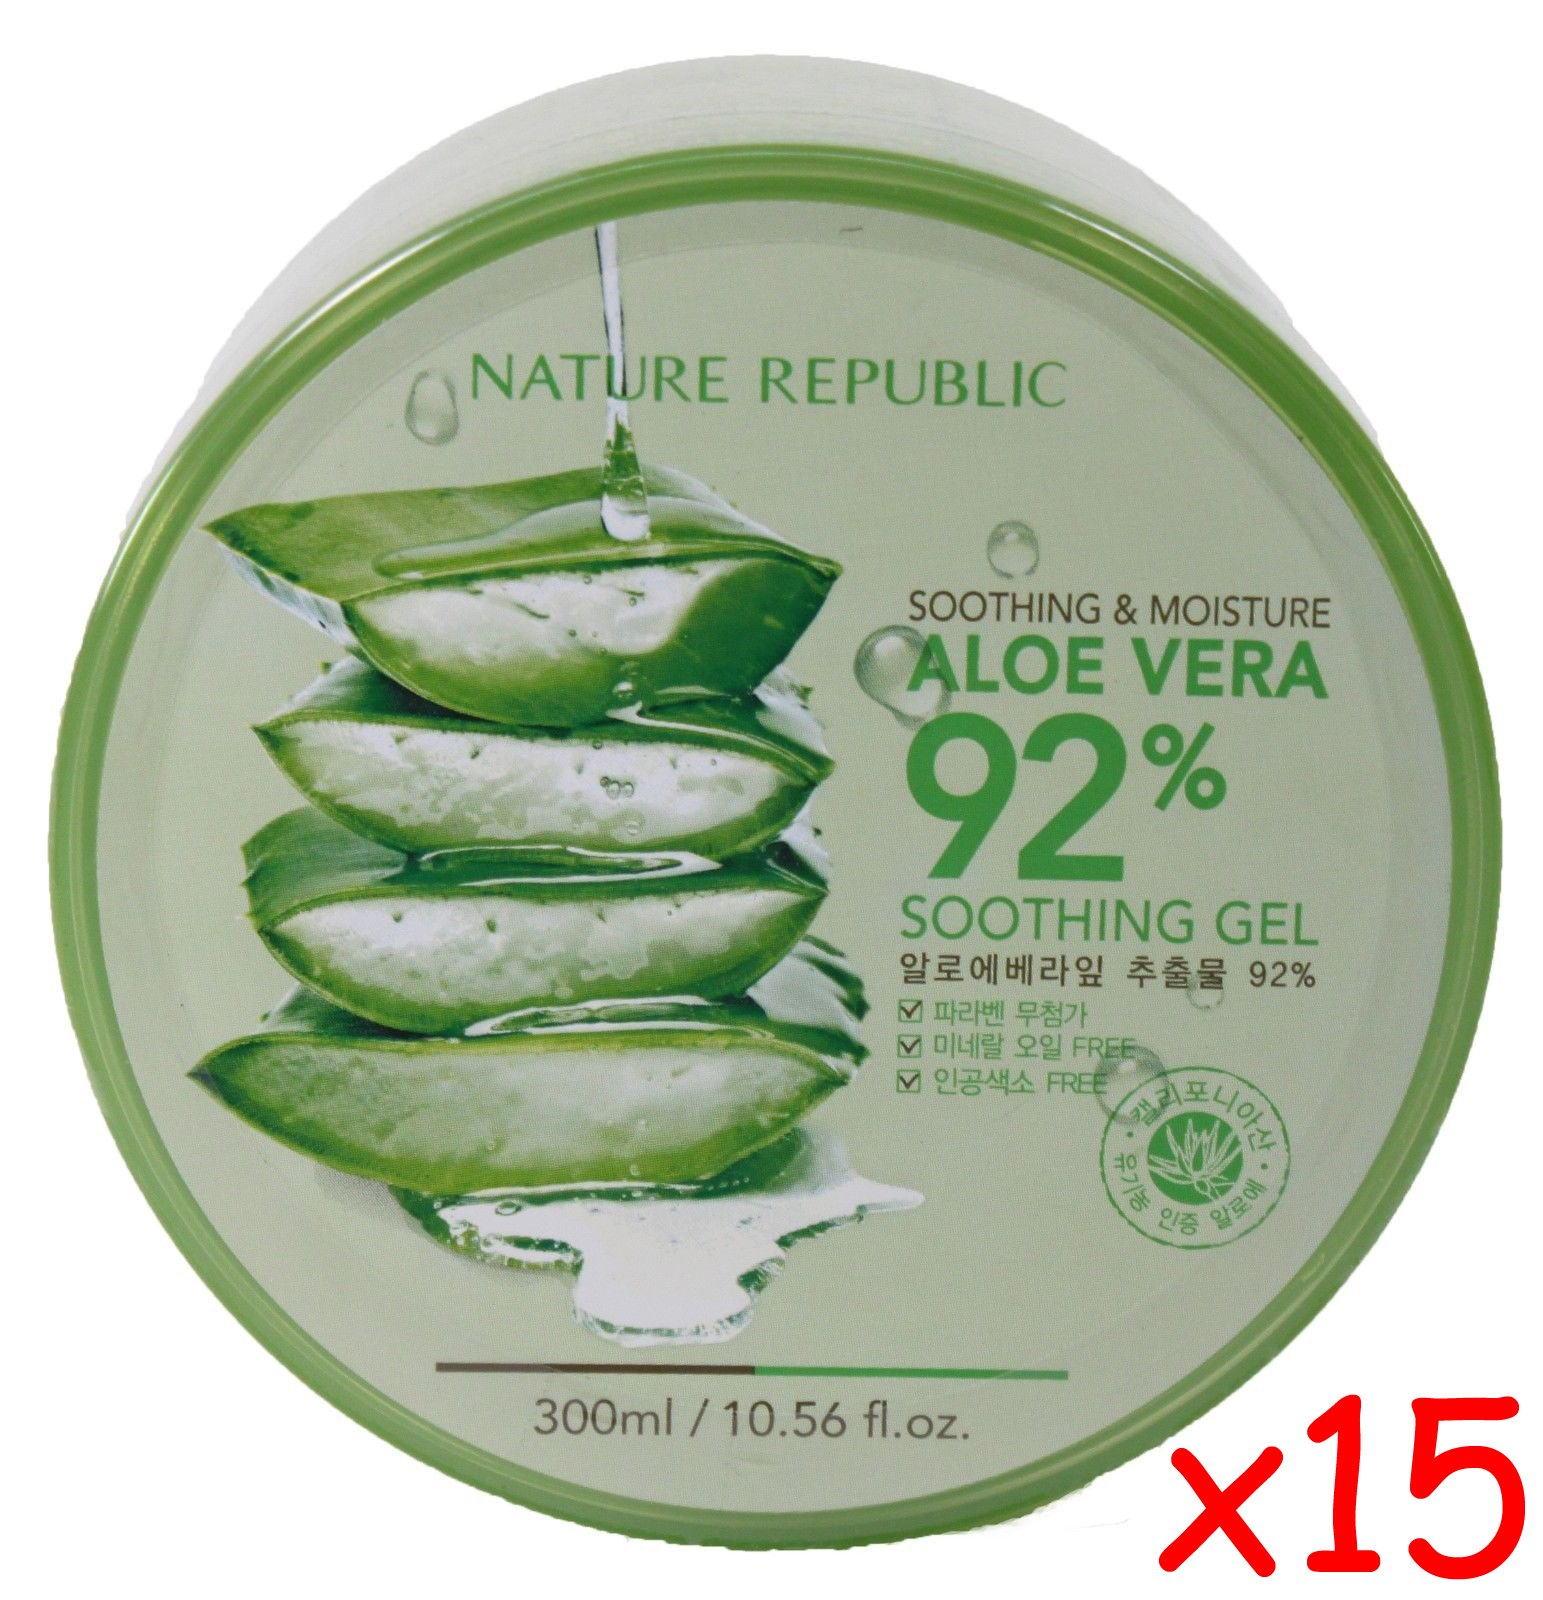 Nature Republic Skin Soothing Moisture Aloe Vera 92% Natural Gel Value Pack of 15